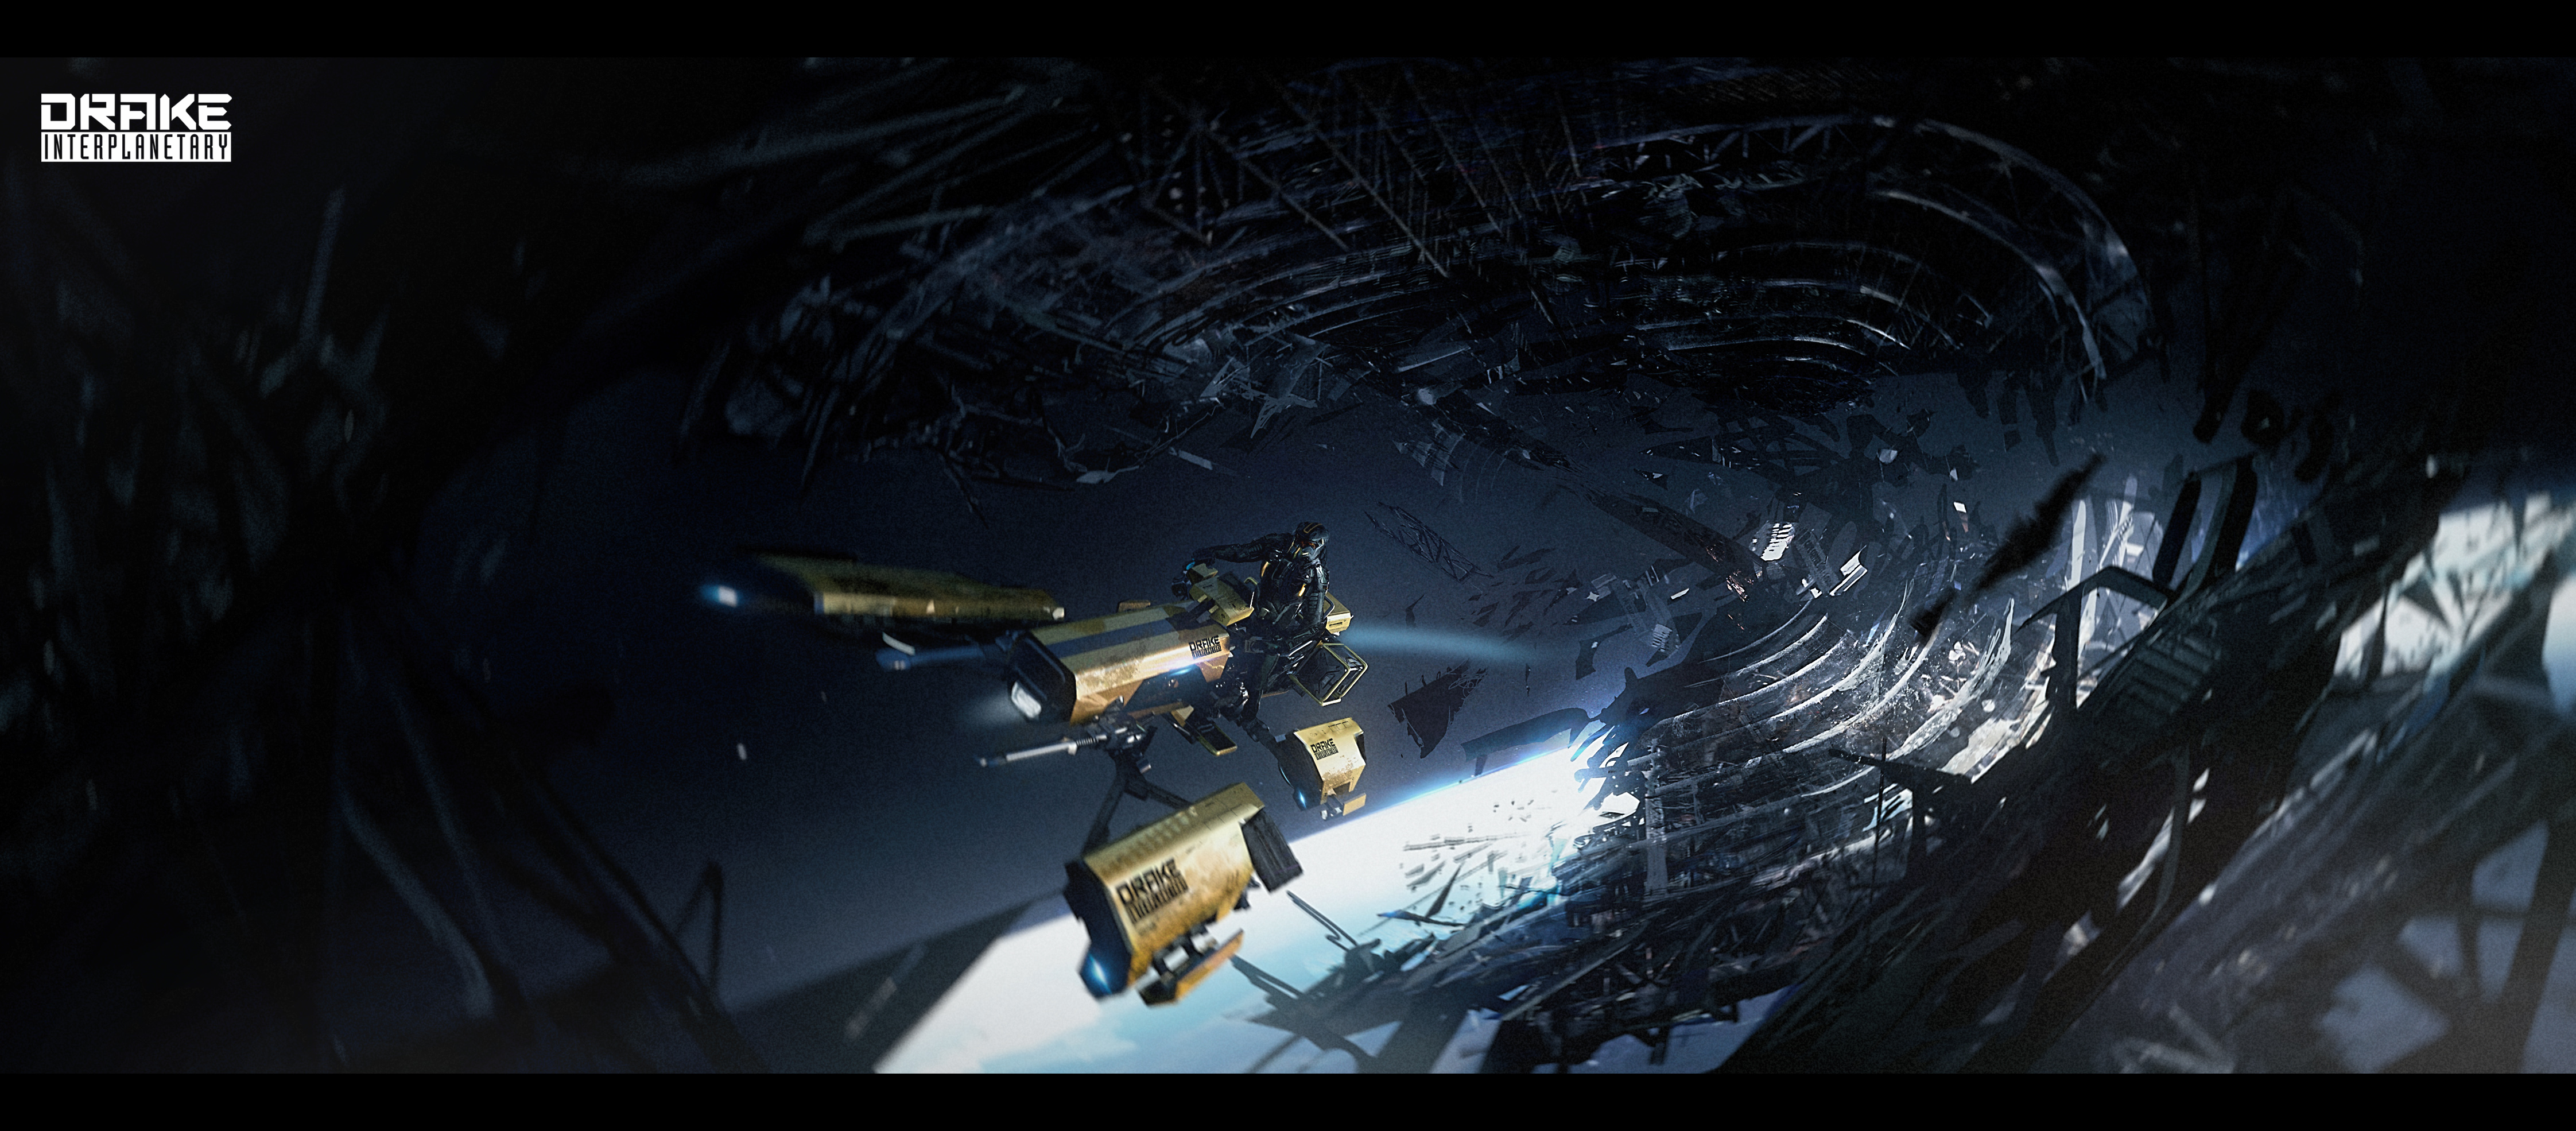 Drake_Dragonfly_Exploration_Wreckage_01B